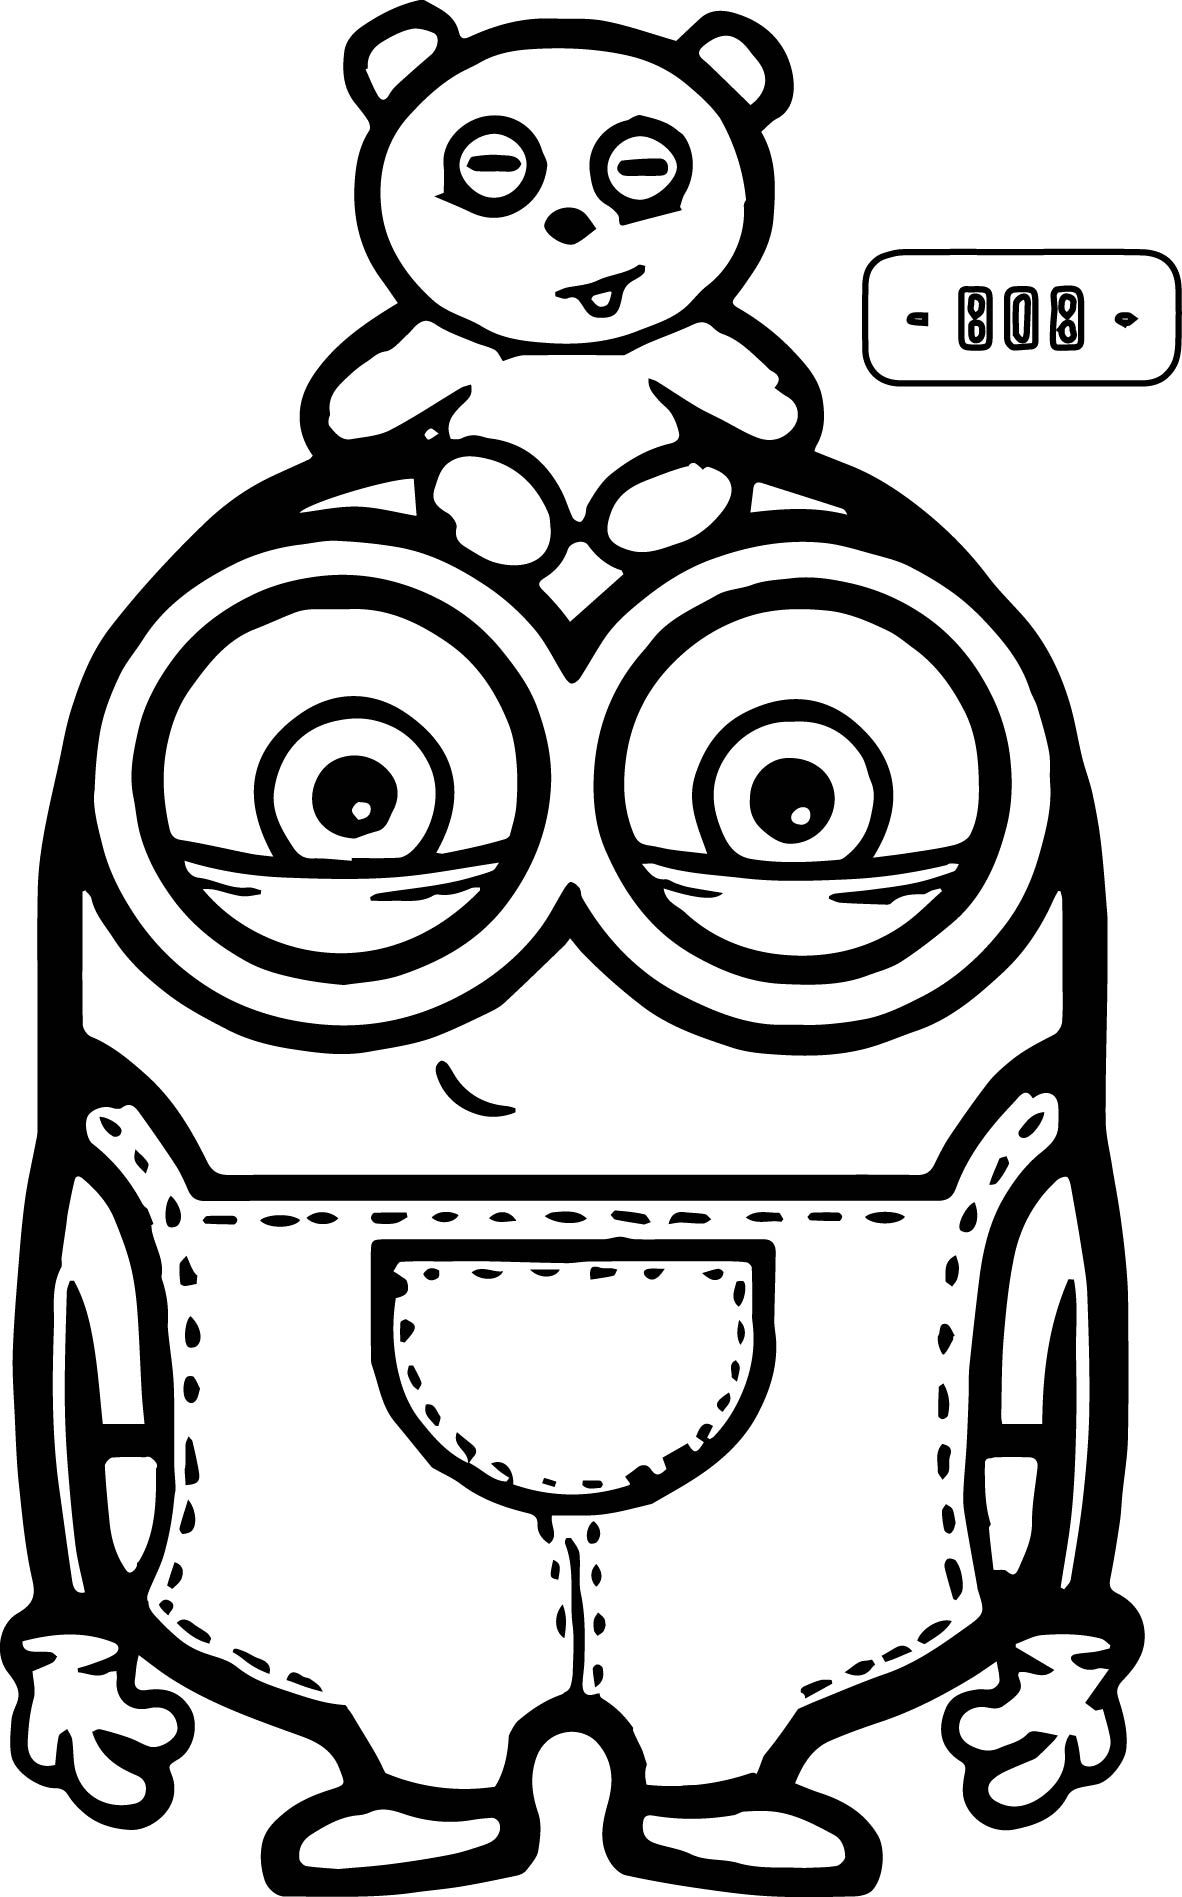 Cute Bob And Bear Minions Coloring Page Minions Coloring Pages Minion Coloring Pages Cute Coloring Pages